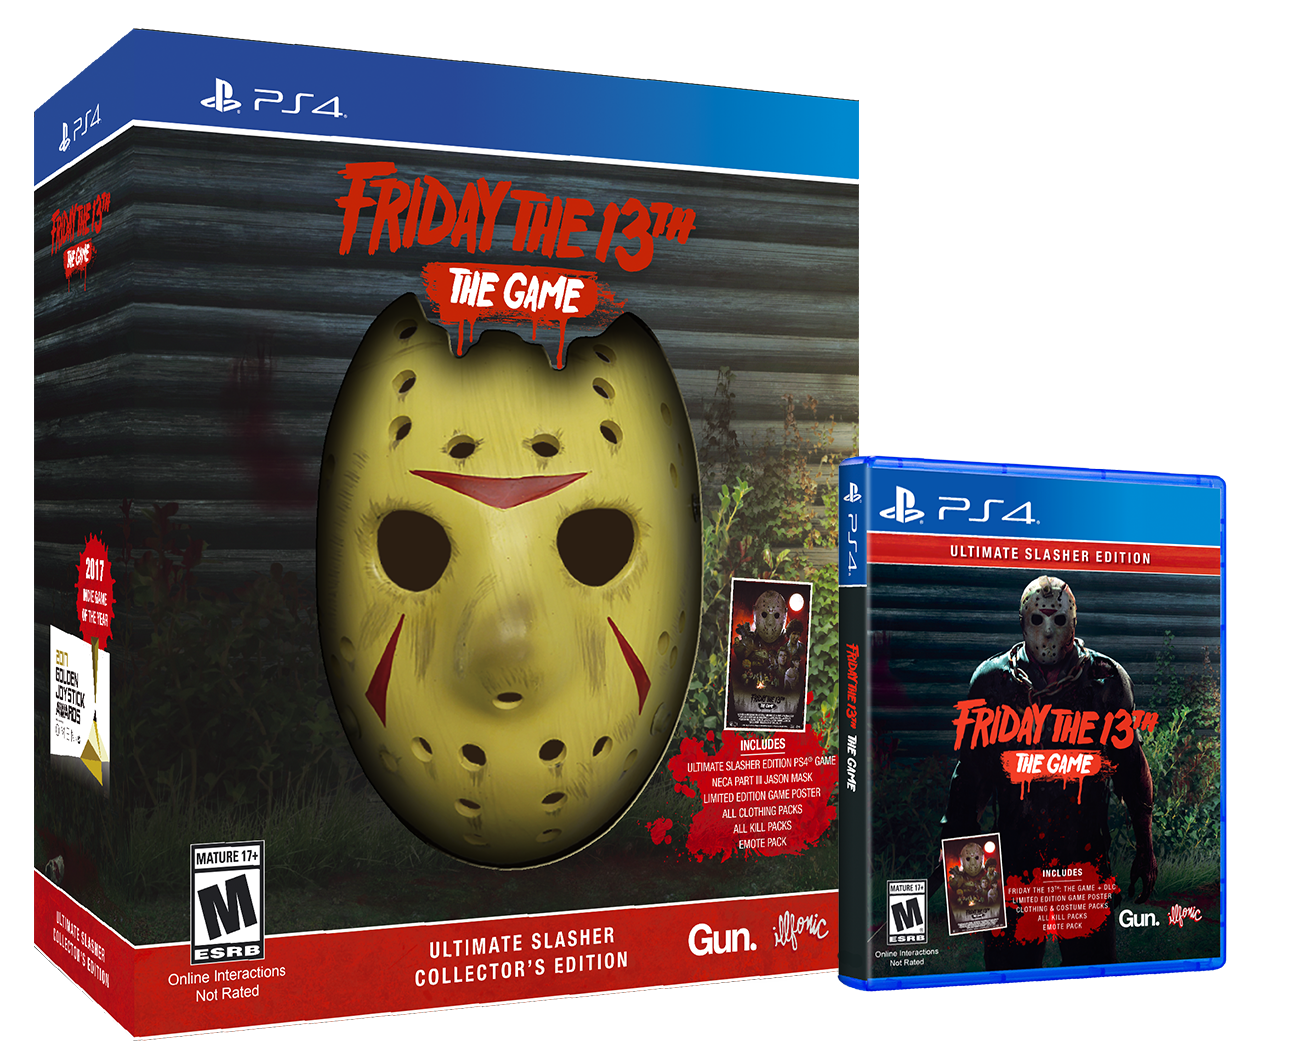 F13 USCE PS4 Group - Must-Own: FRIDAY THE 13TH: THE GAME Ultimate Slasher Collector's Edition